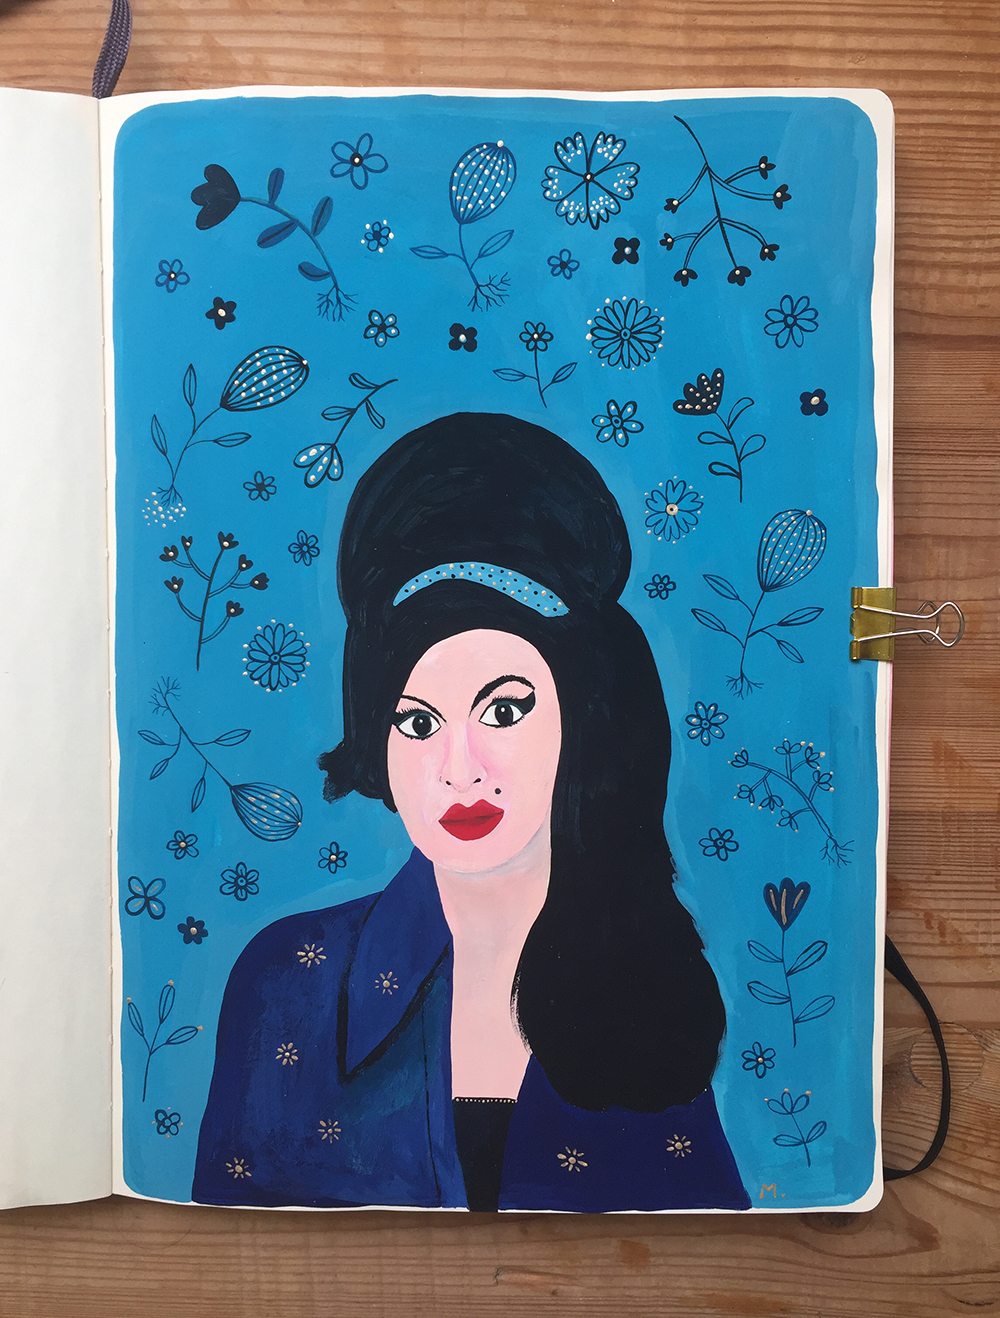 Amy Winehouse illustration by Marenthe